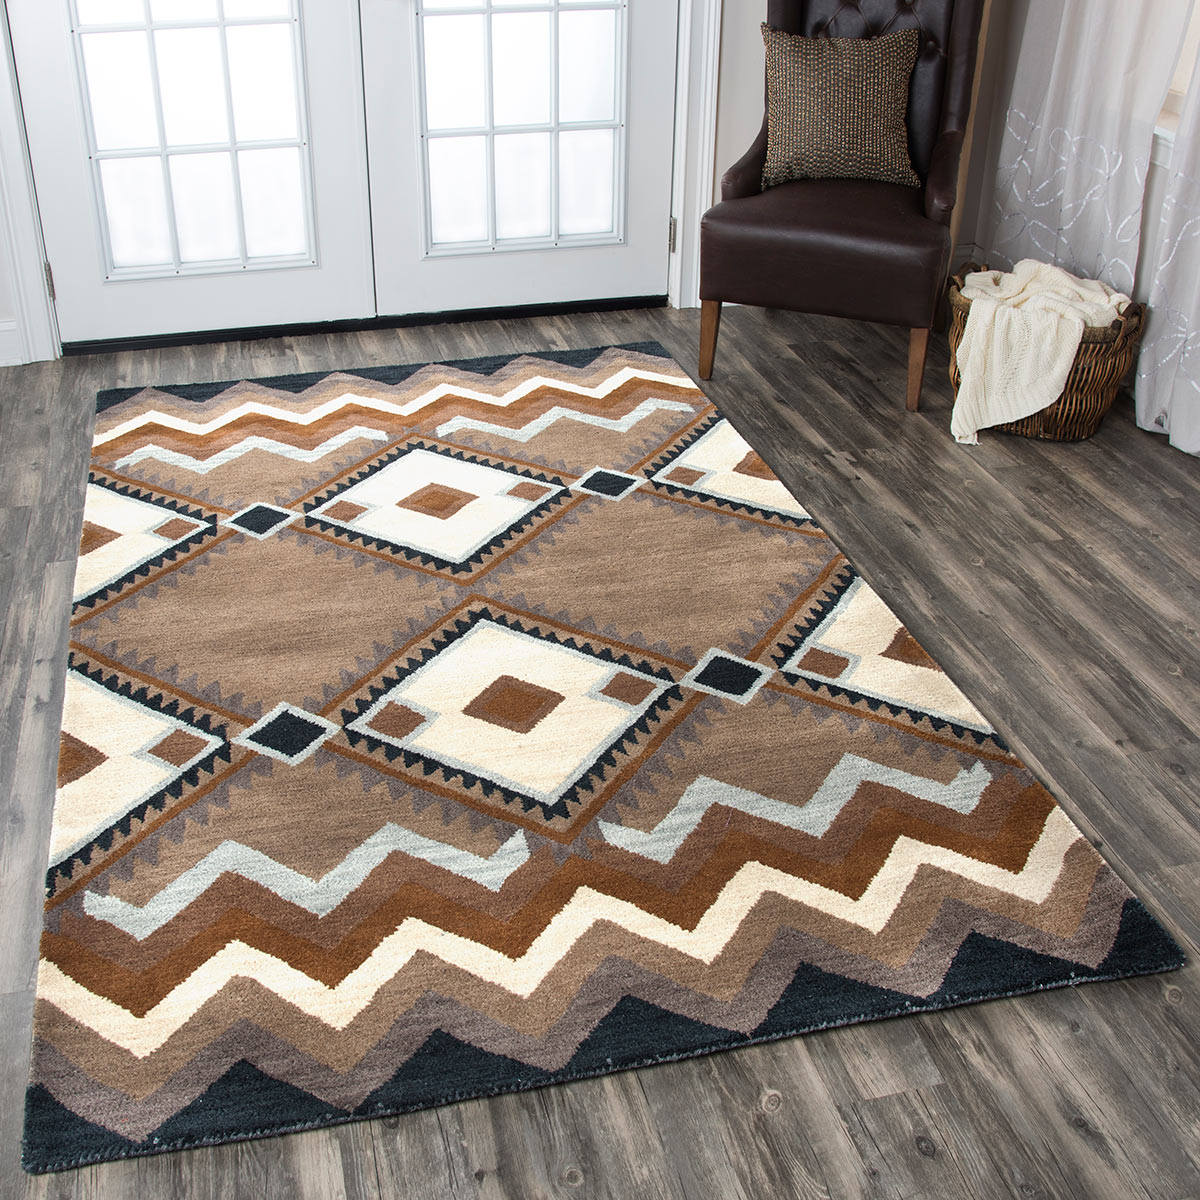 Lee Canyon Rug - 3 x 5